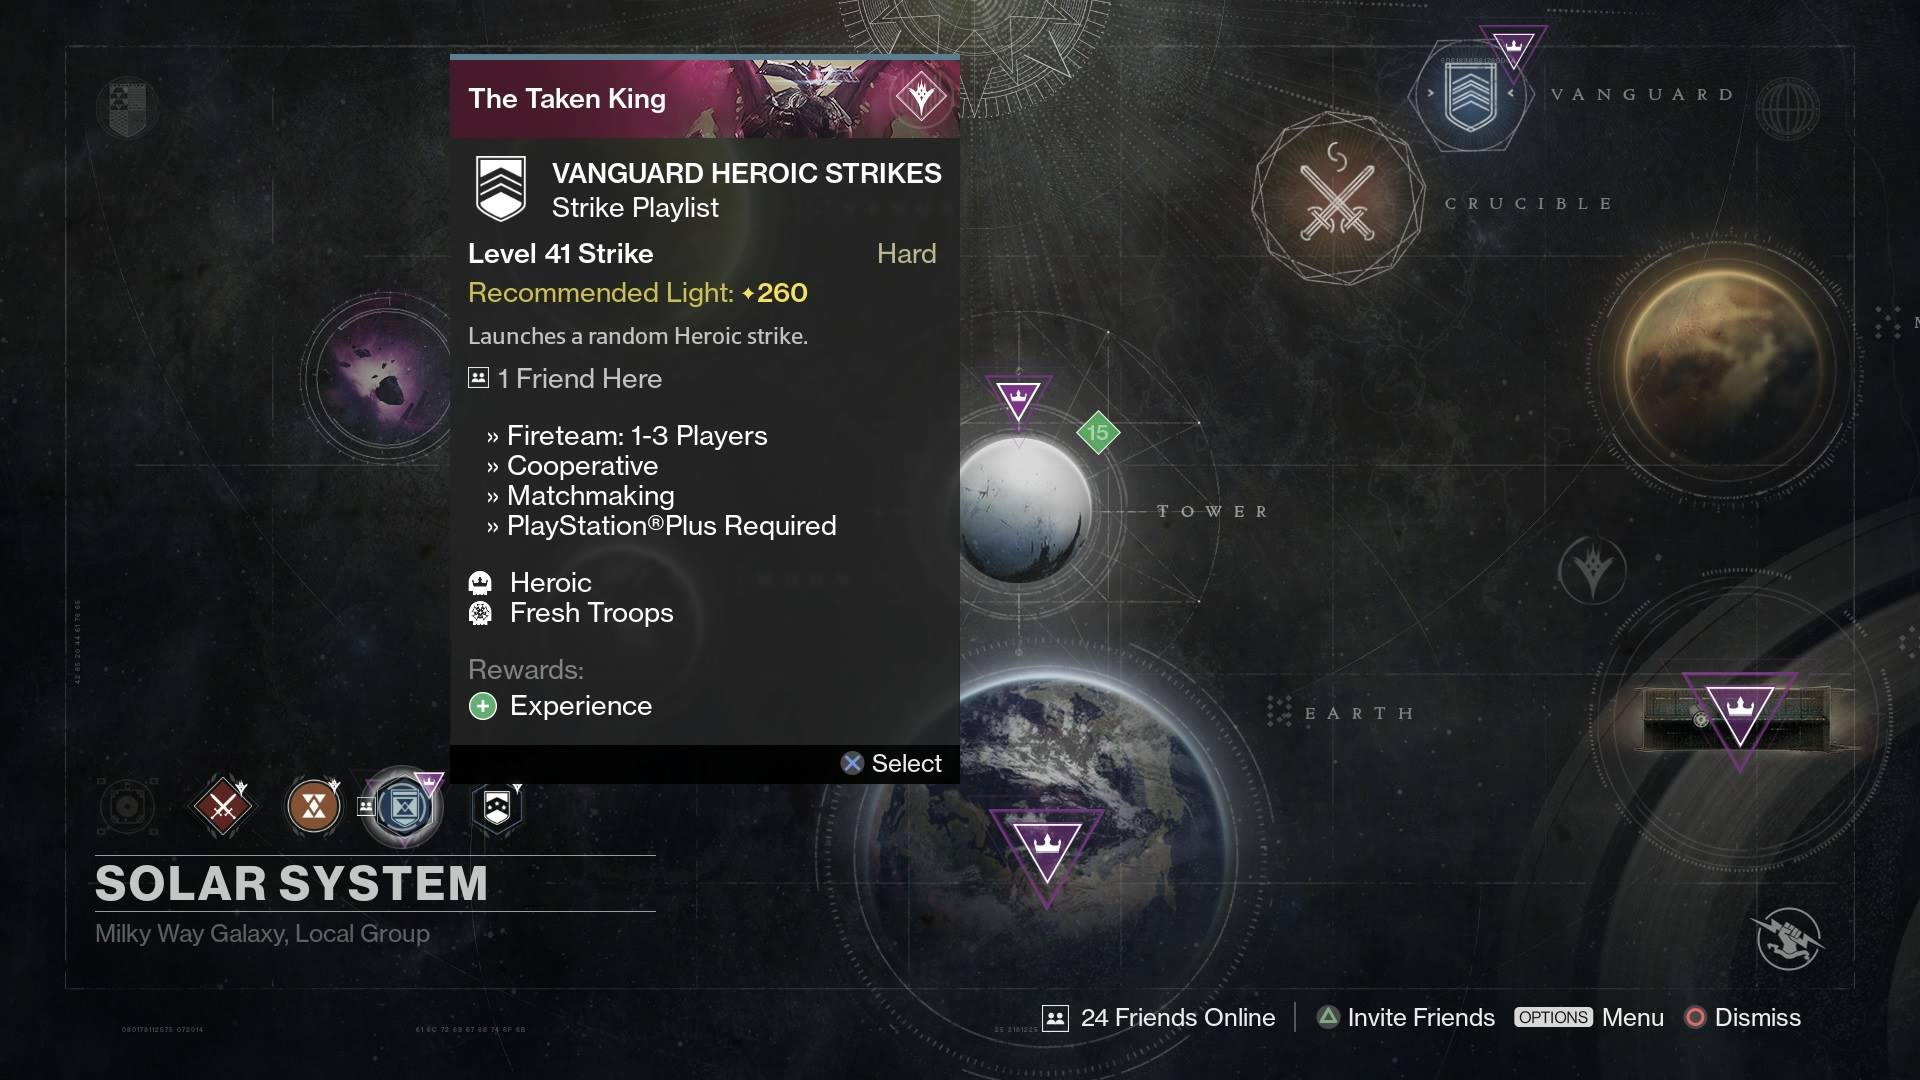 Destiny 2 Bungie Says Matchmaking is Incompatible for Us